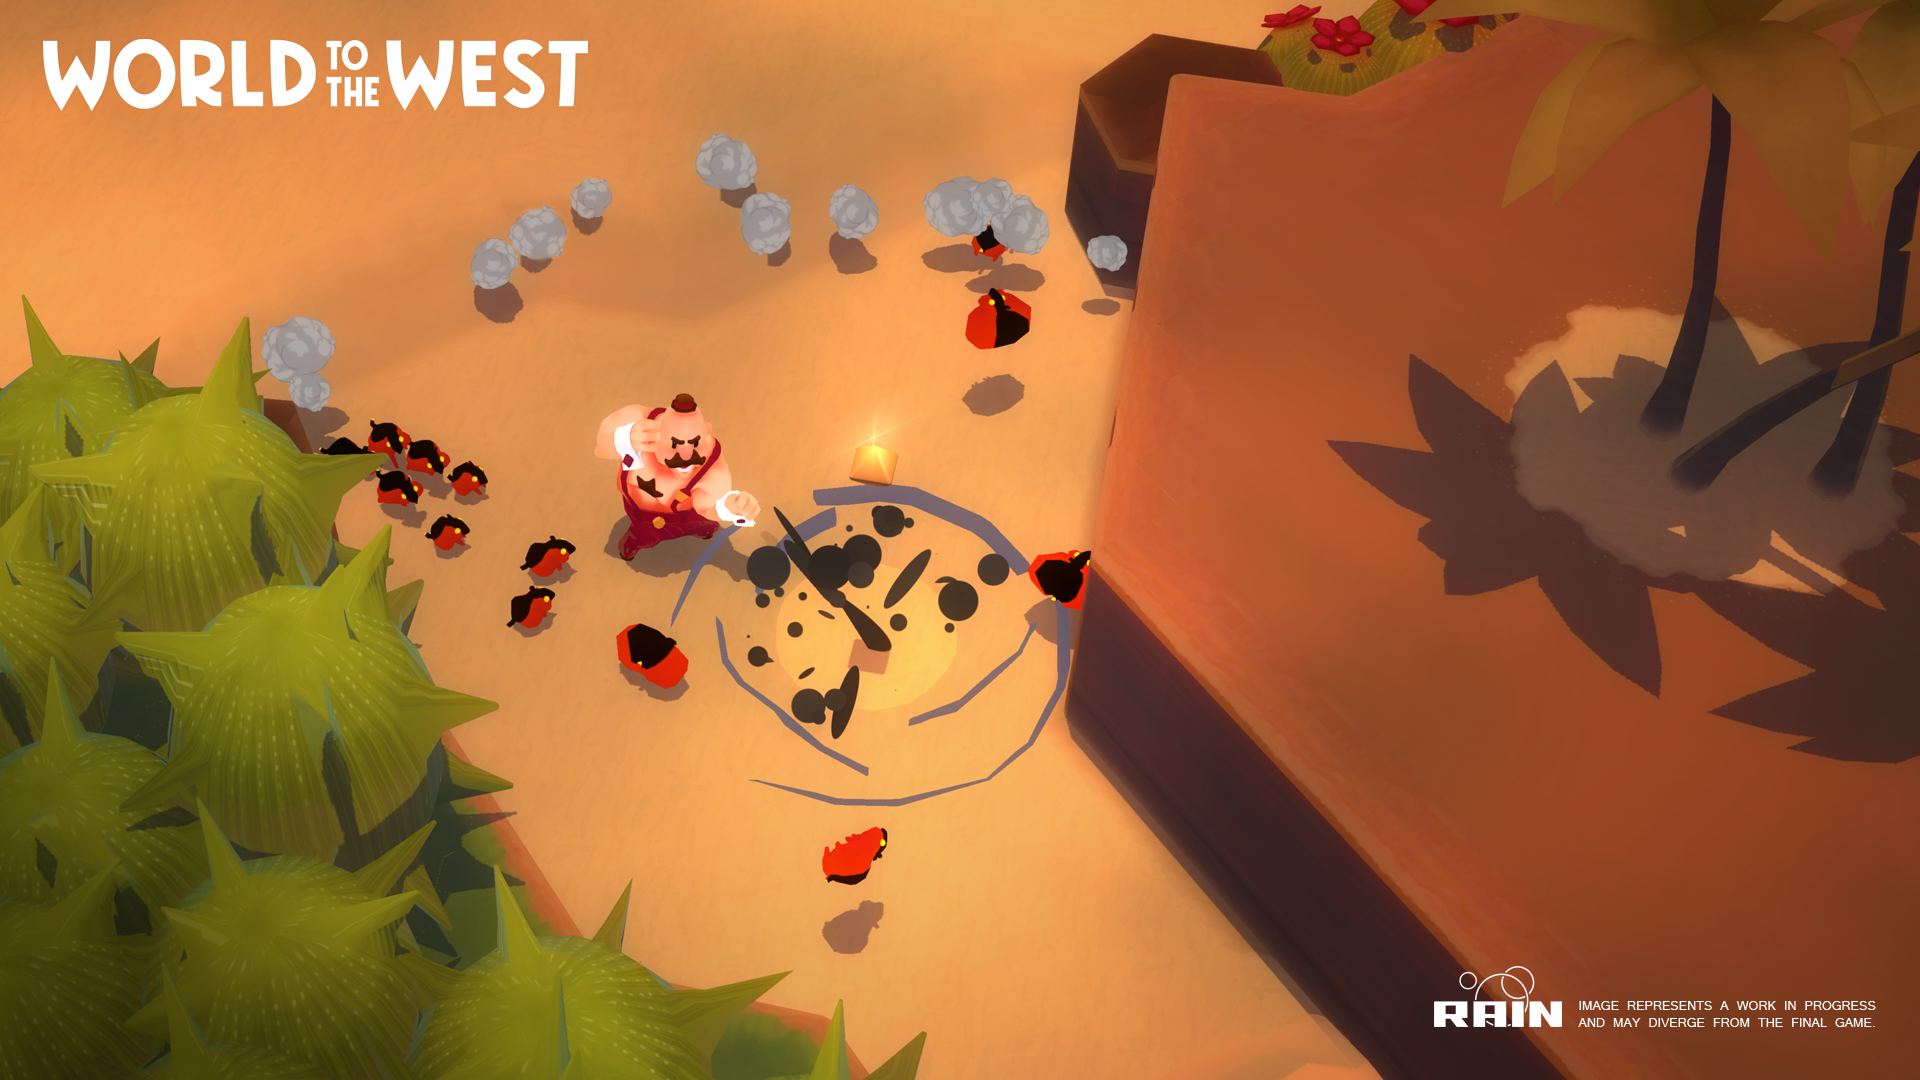 World to the West #7